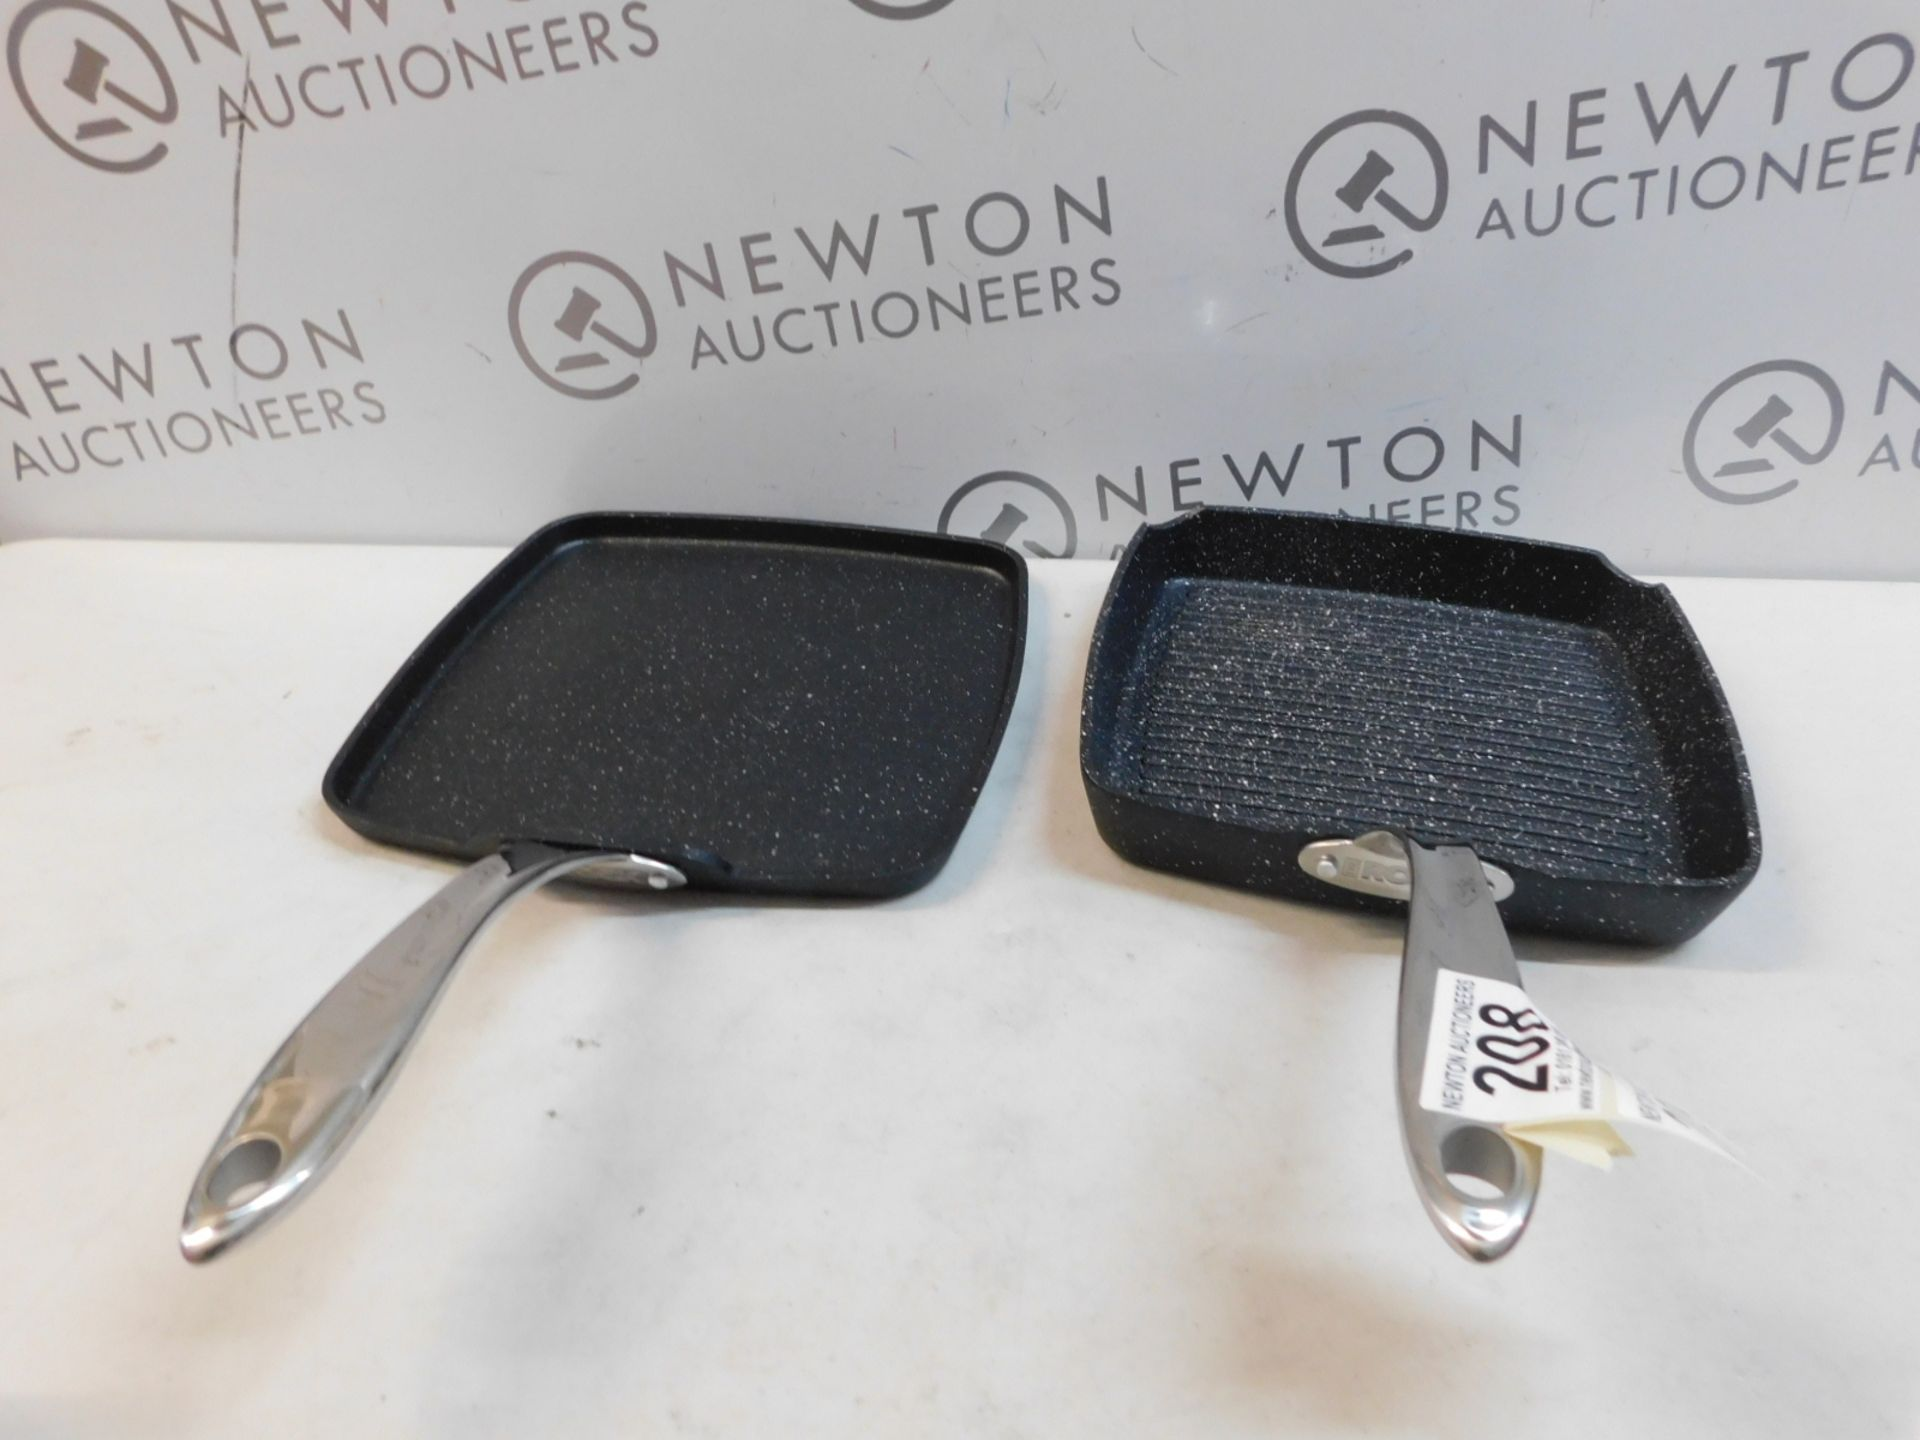 1 STARFRIT THE ROCK GRILL PAN & GRIDDLE SET RRP £64.99